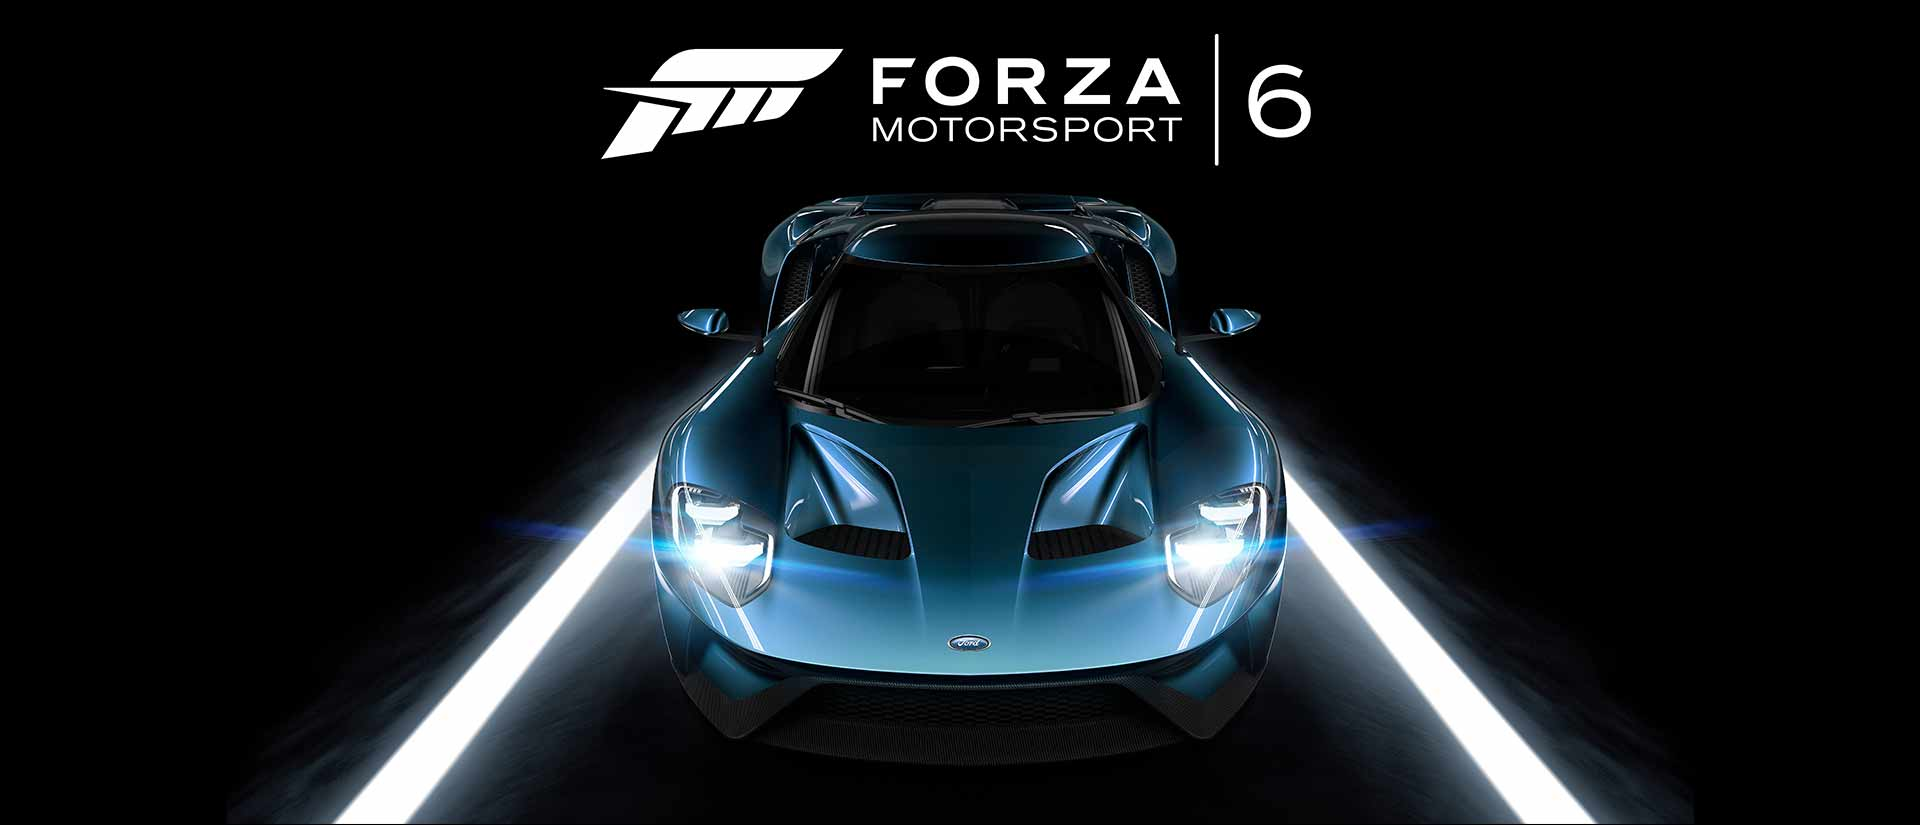 Astounding Forza 6 Trailer And Stills